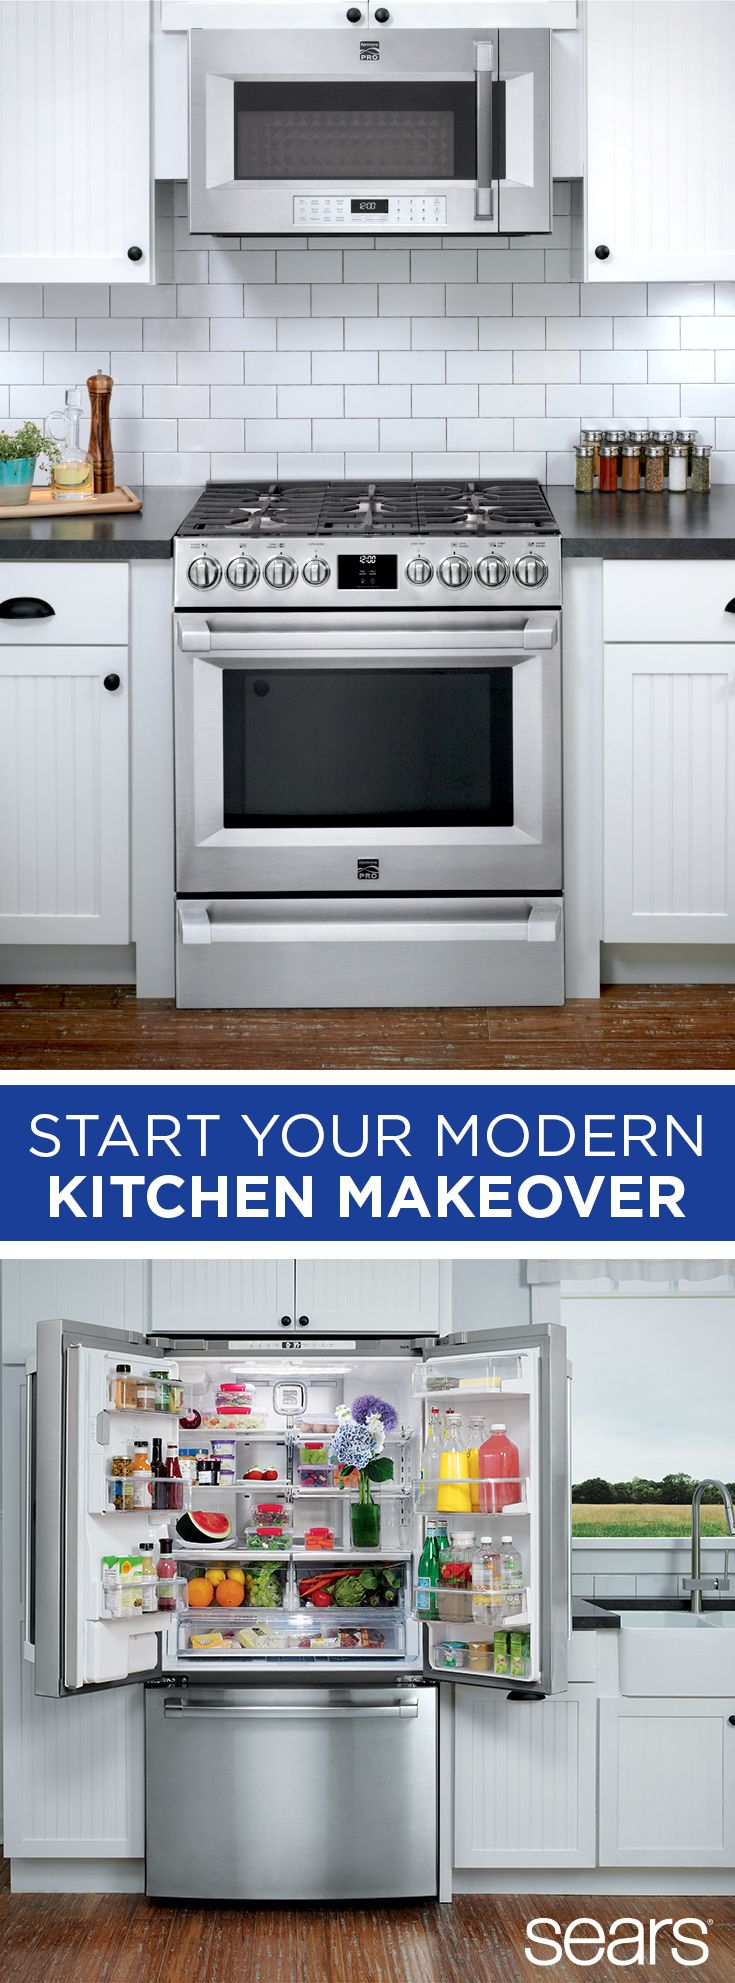 Stainless Steel Appliances Are A Timeless Choice Whether You Re Moving Into A New Home Or Remodeling To Create A Dream Ki Kitchen Kitchen Redo Kitchen Remodel